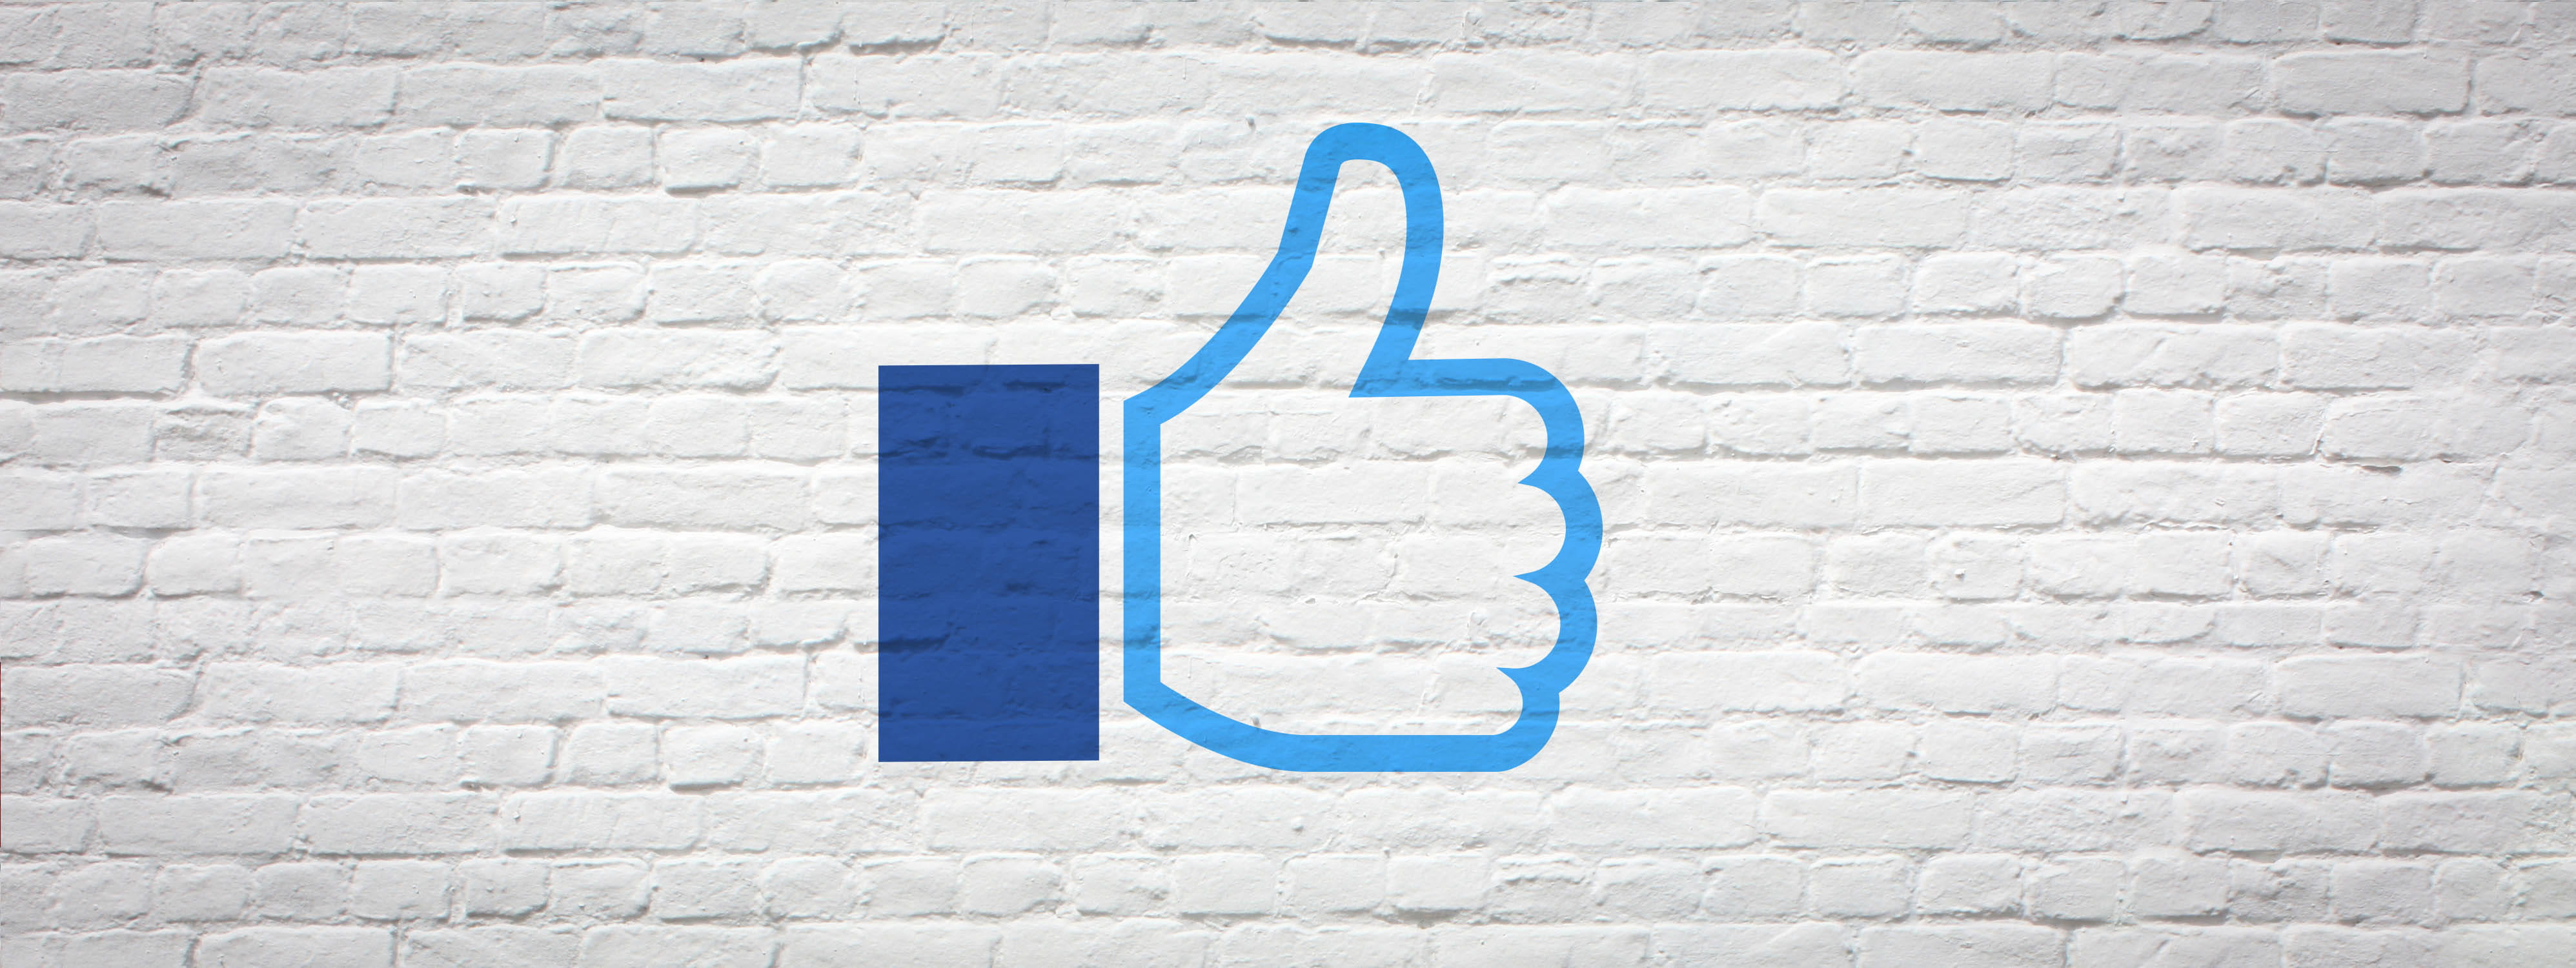 Advertisers continue to spend more on Facebook